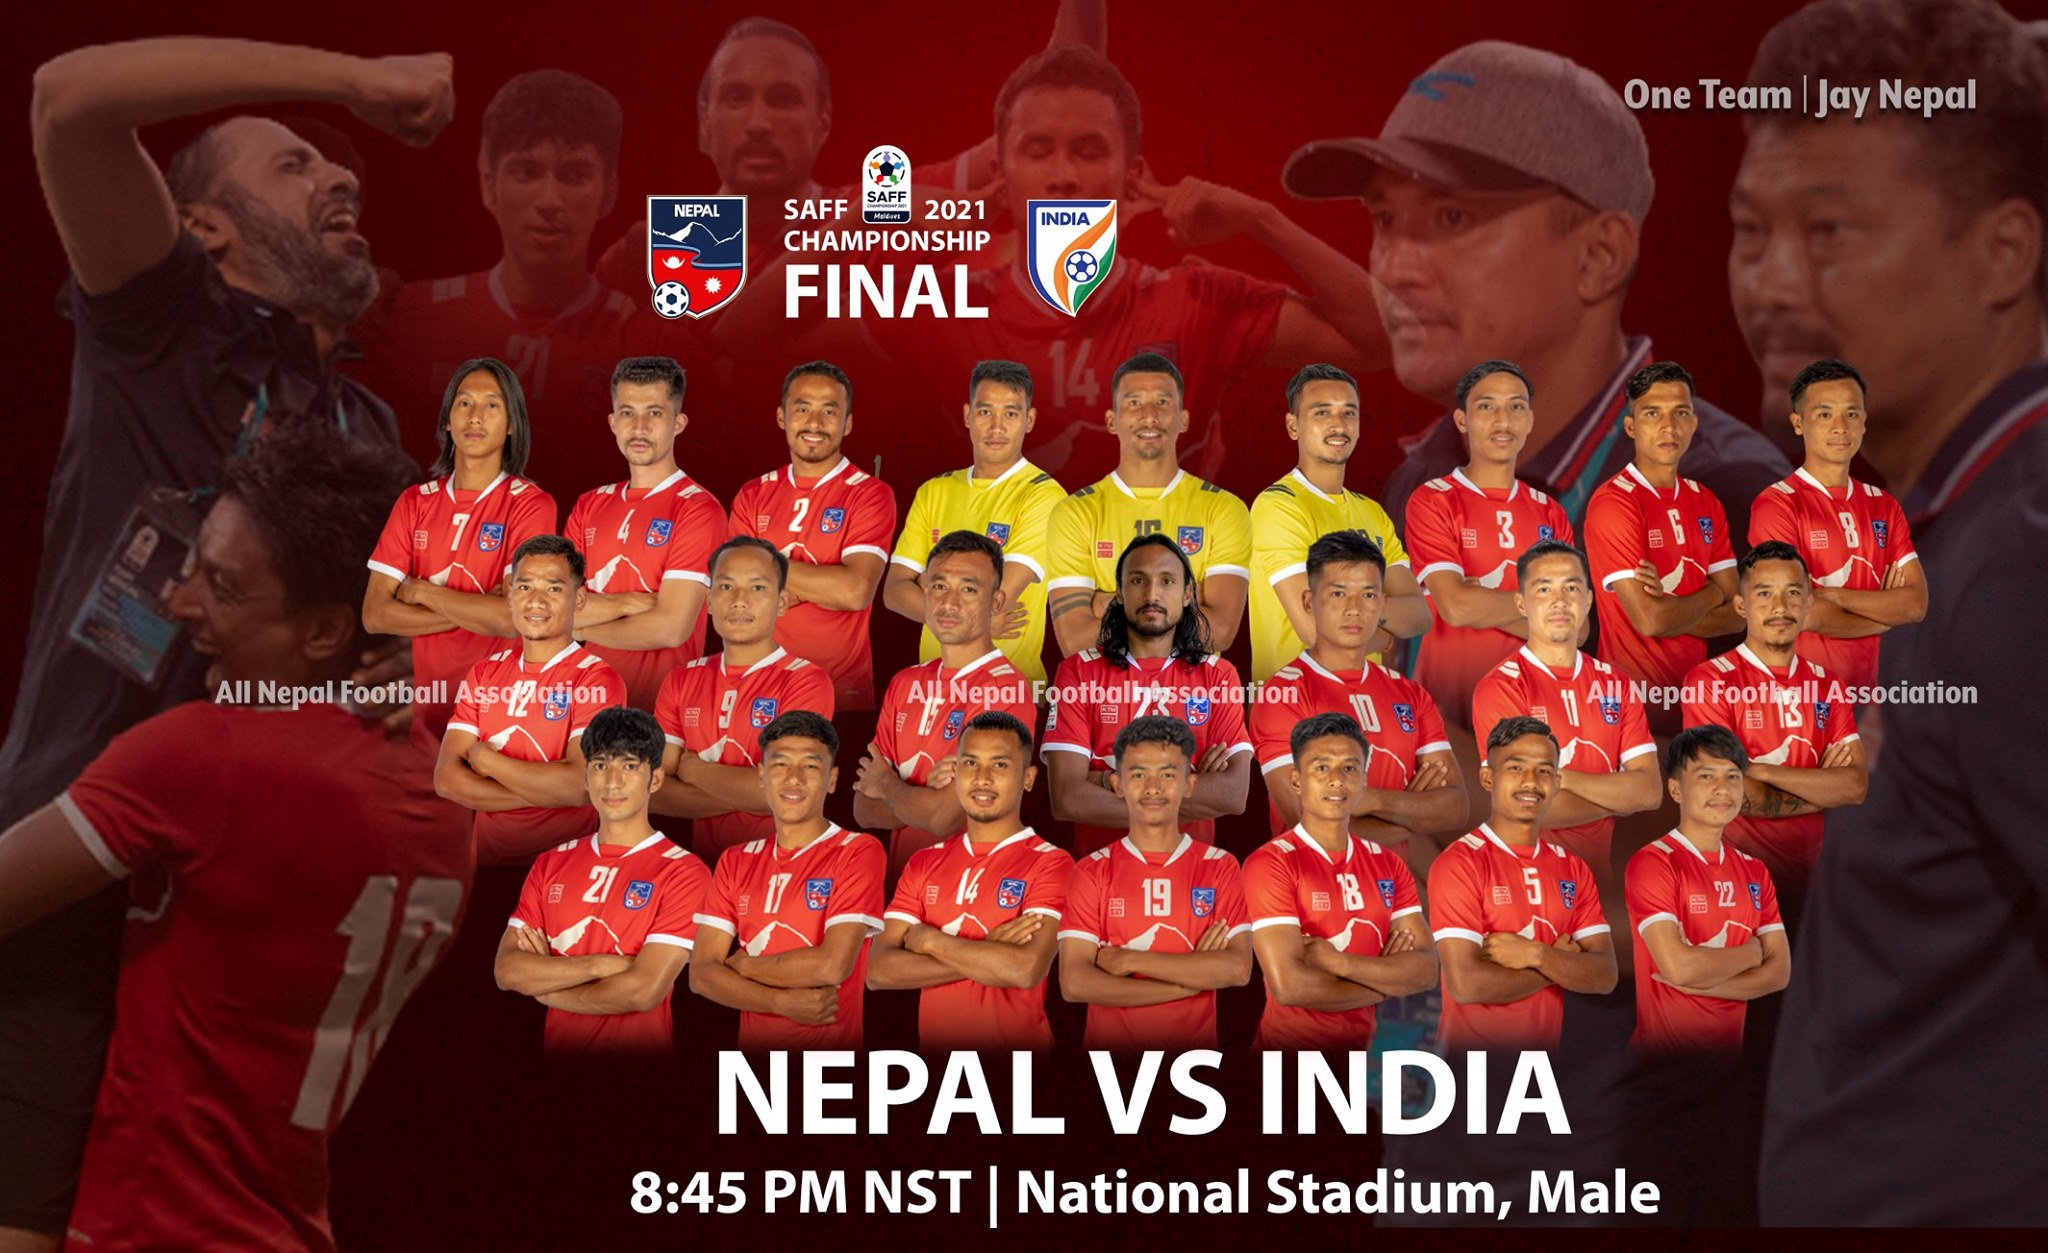 SAFF Championship: Nepal and India playing for the title today